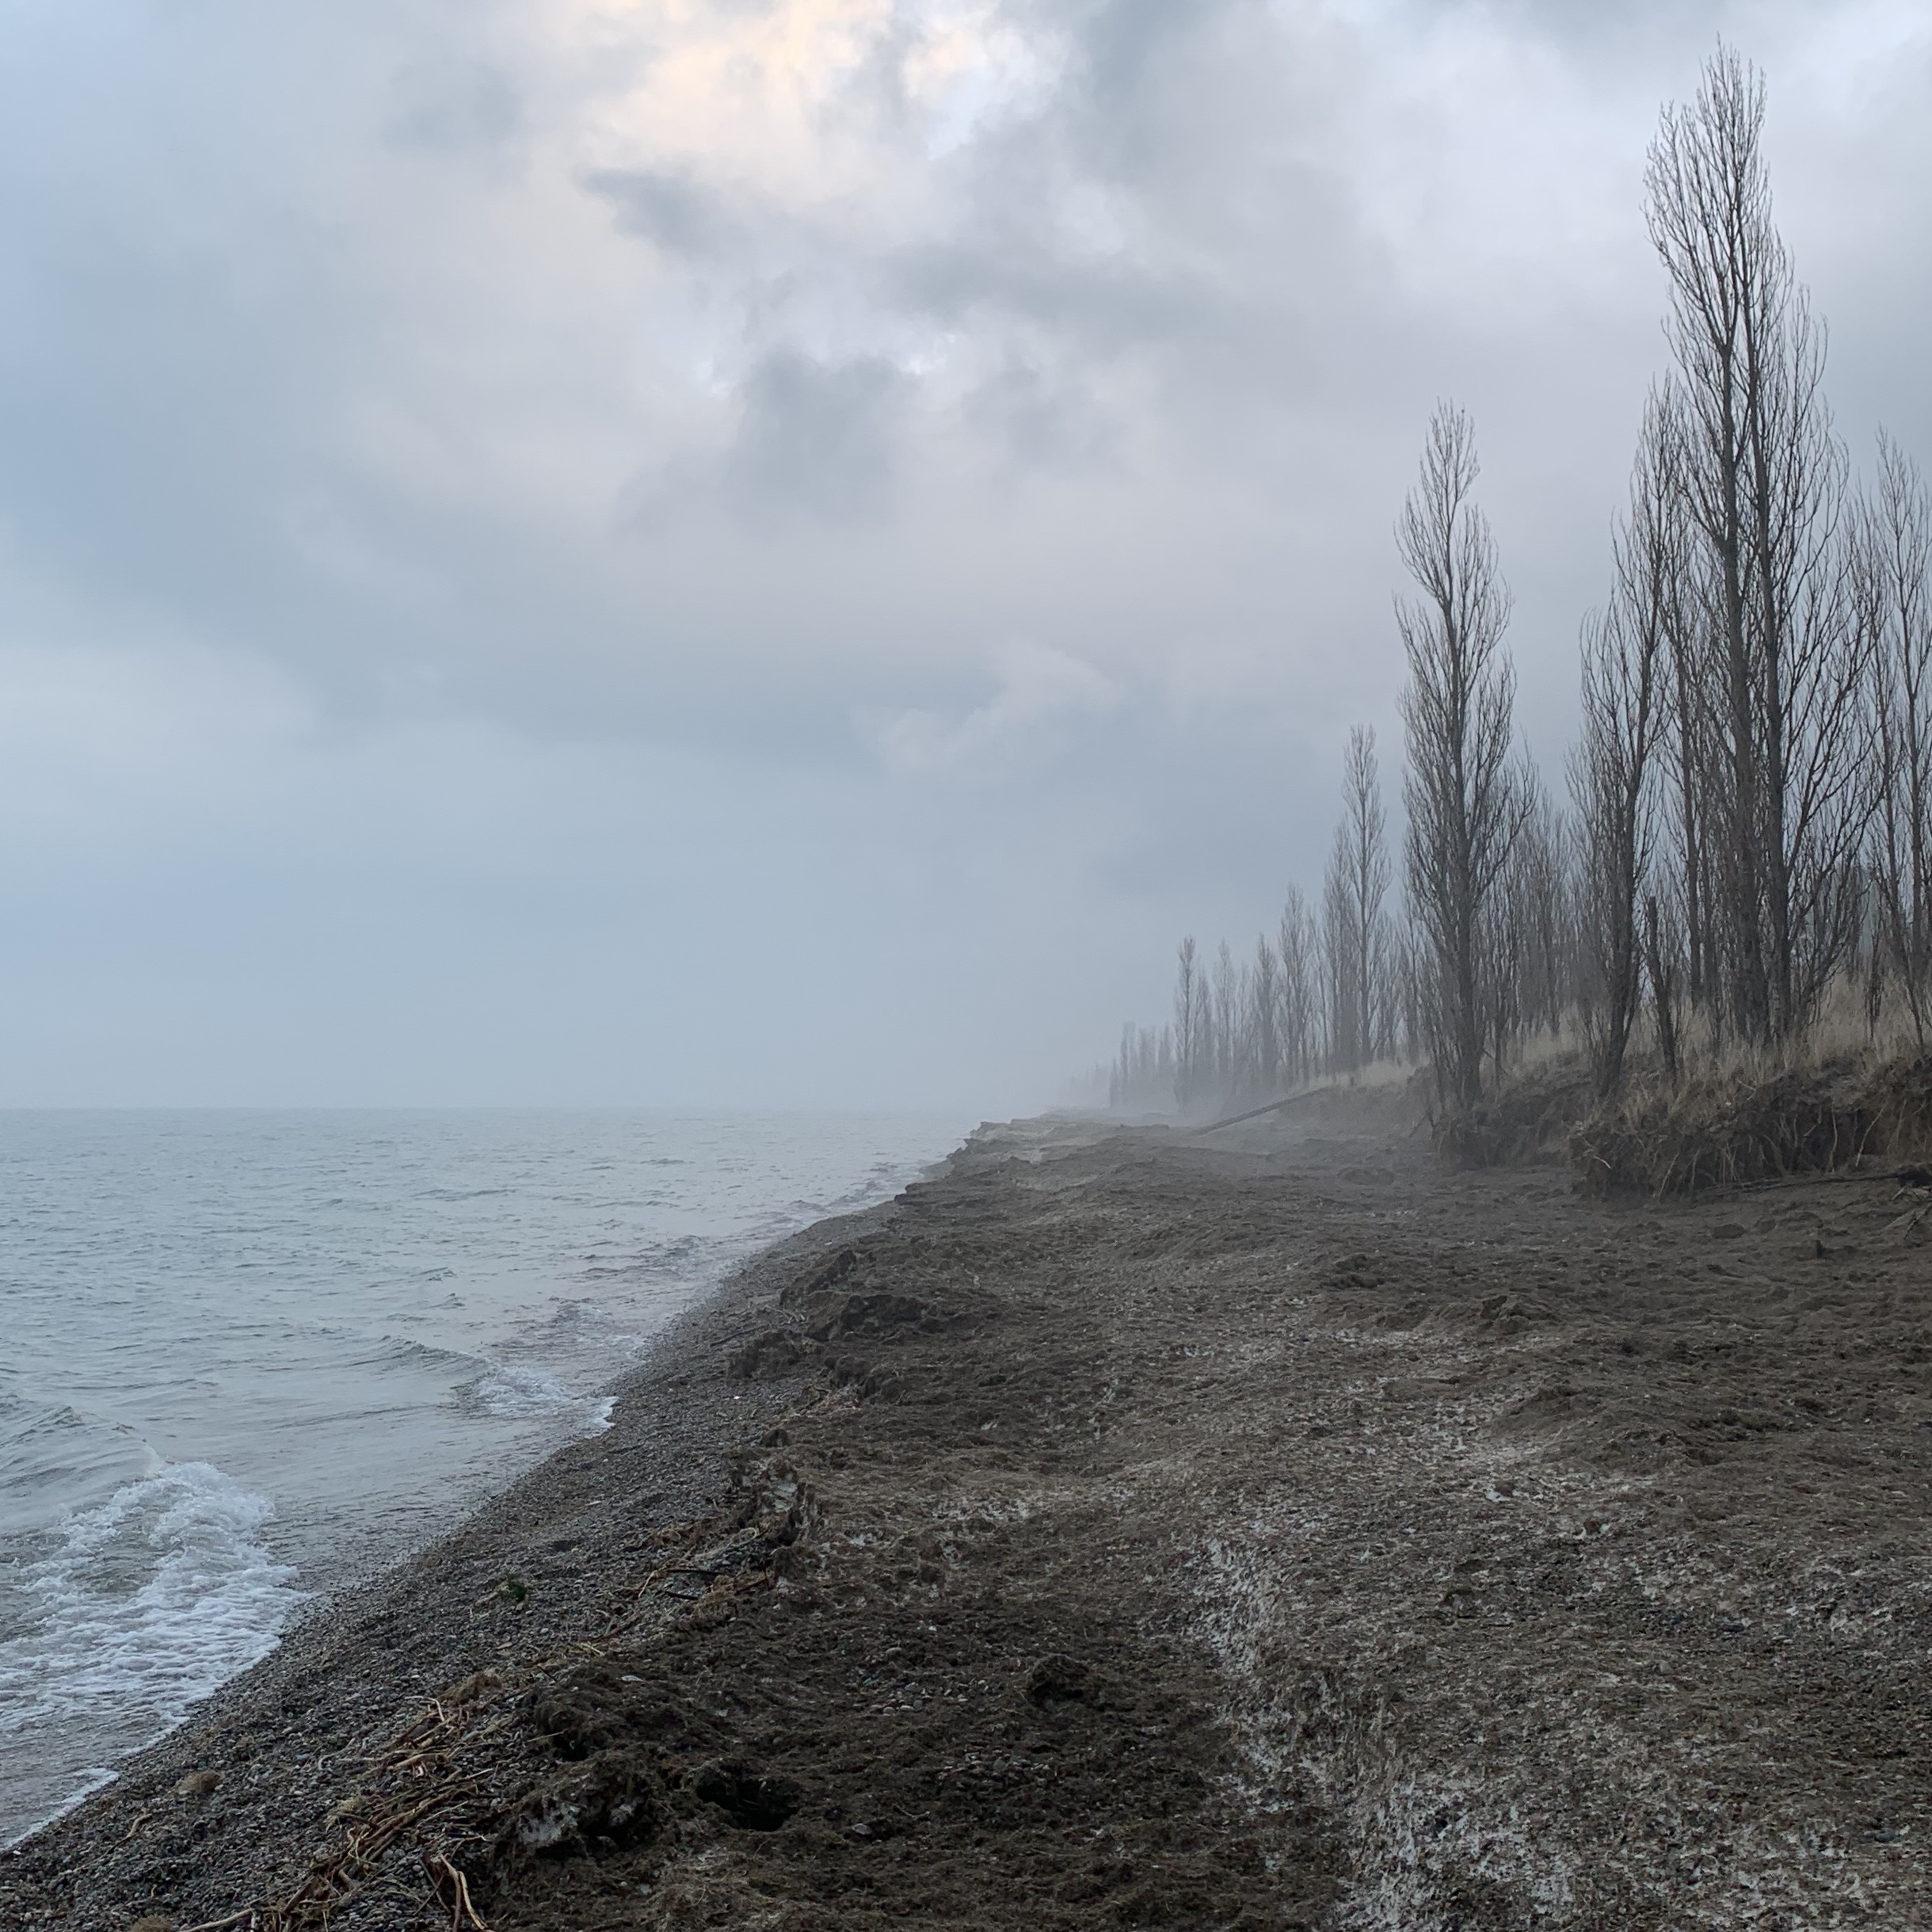 shoreline with mist and trees